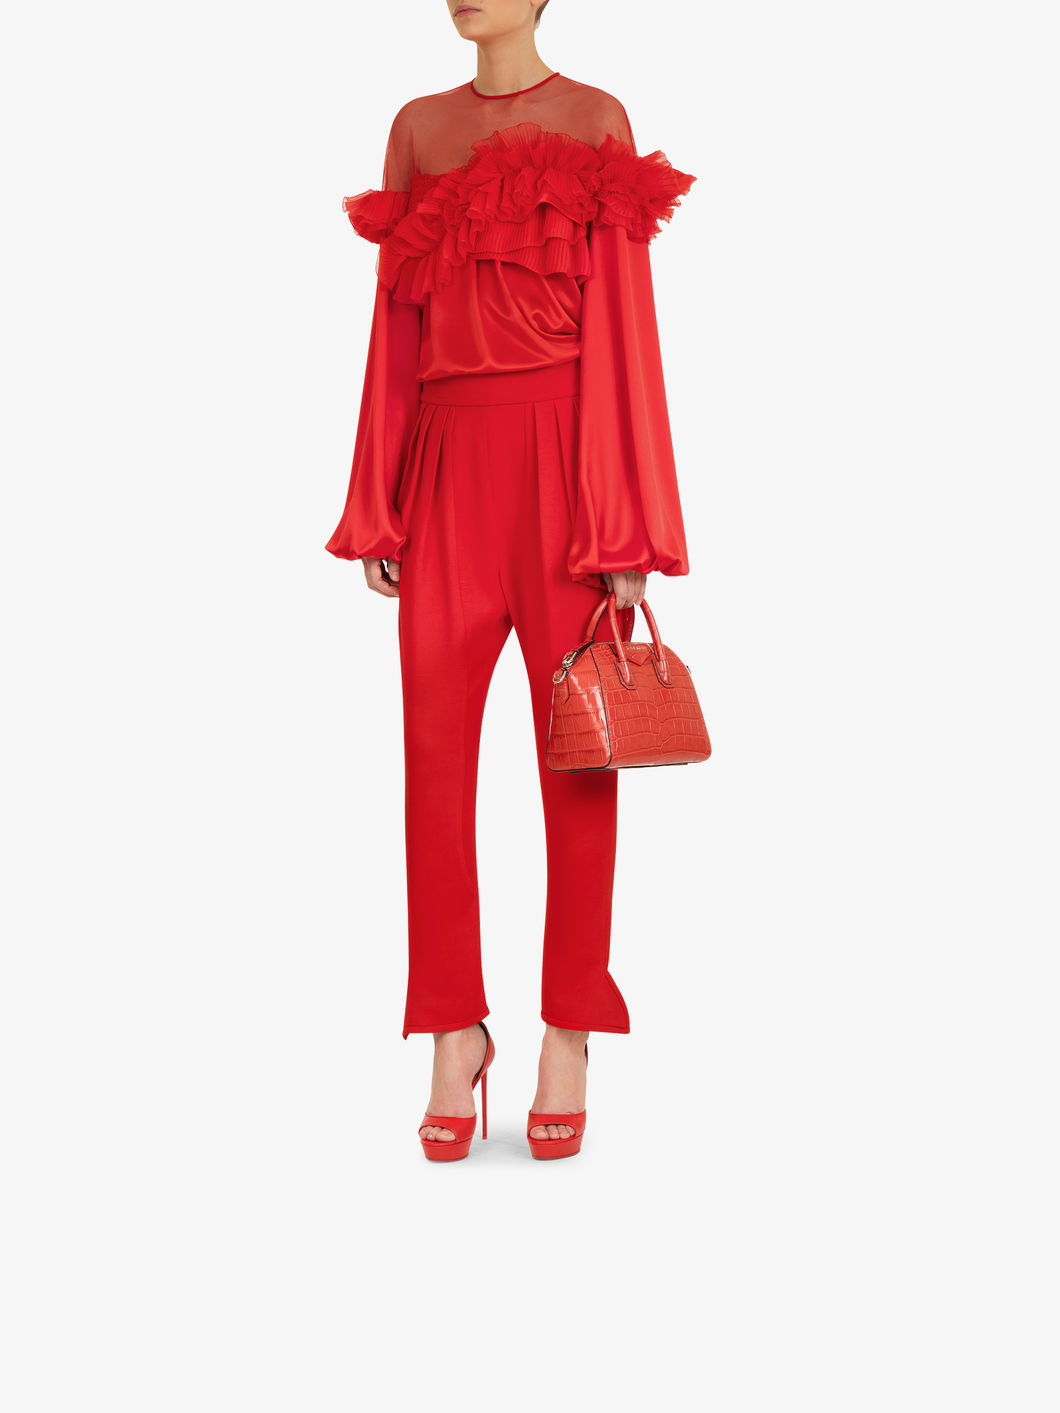 Red Blouse at Givenchy, $2,695